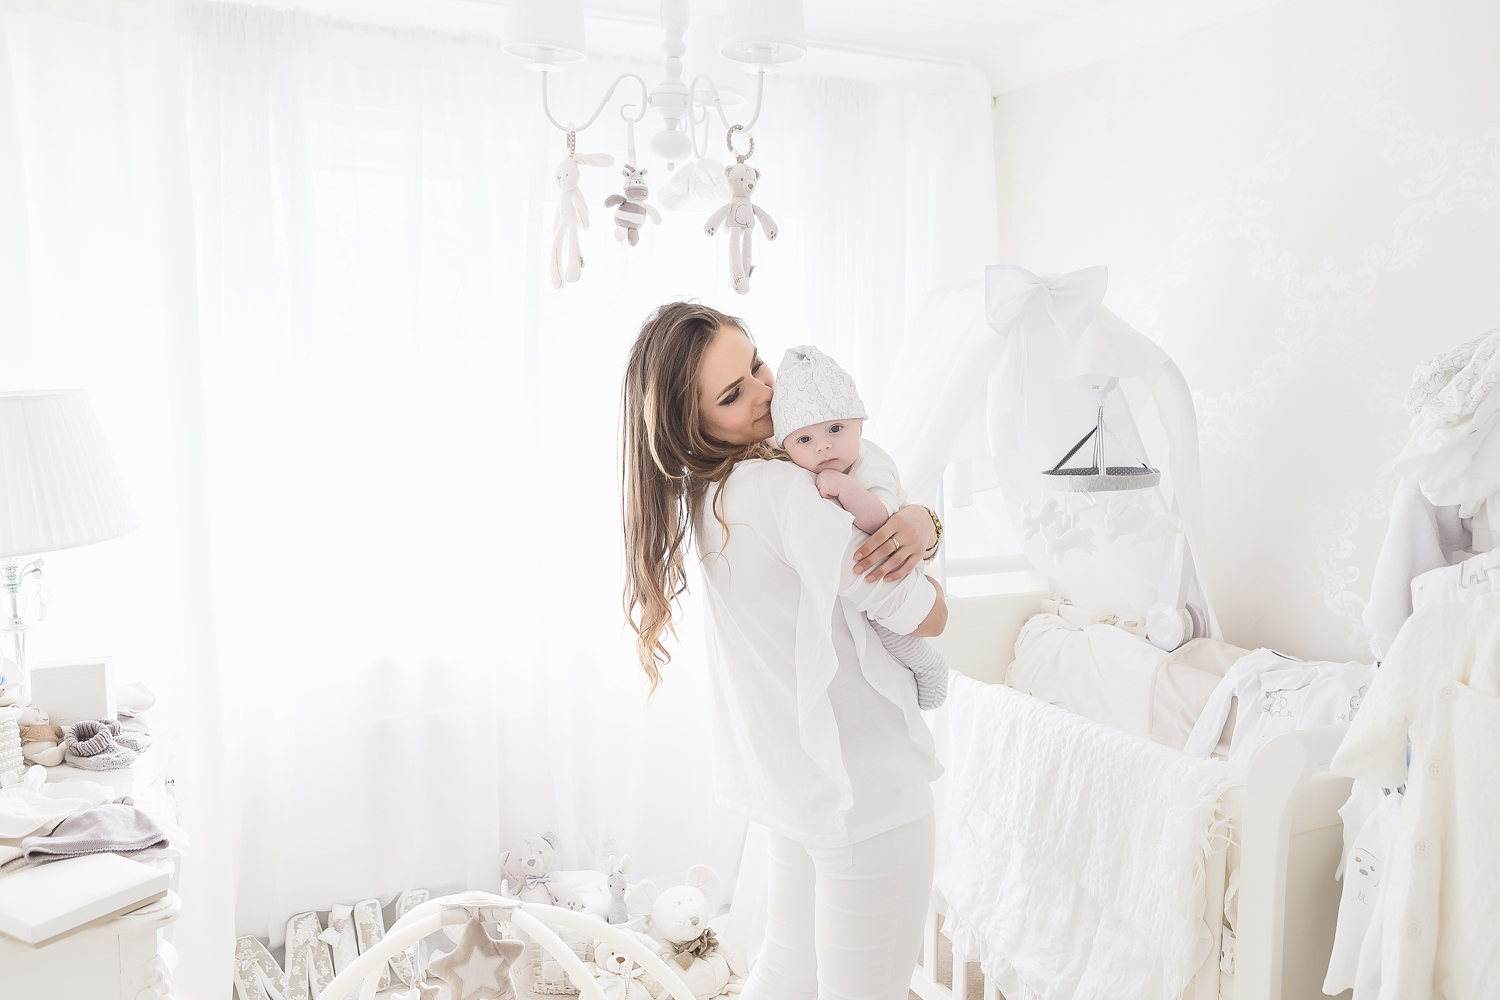 newborn lifestyl photography